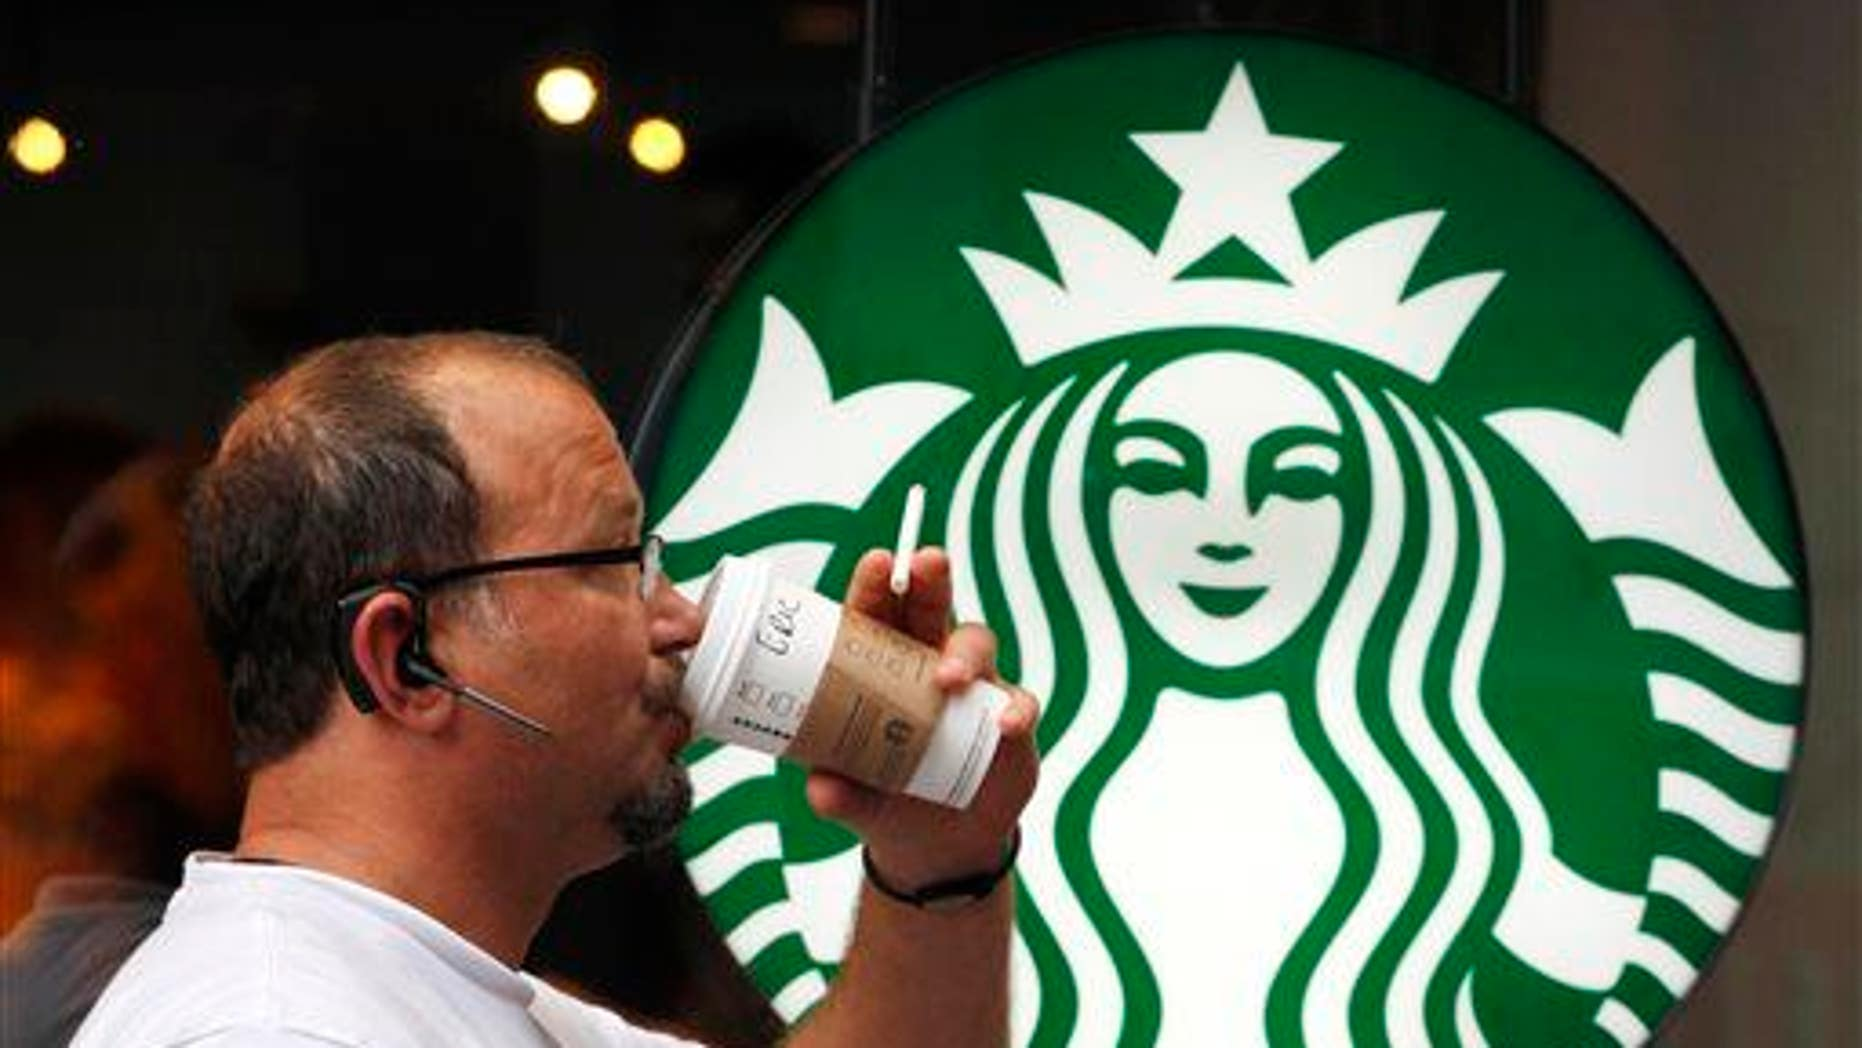 In this July 11, 2013, file photo, a man drinks a Starbucks beverage in New York.